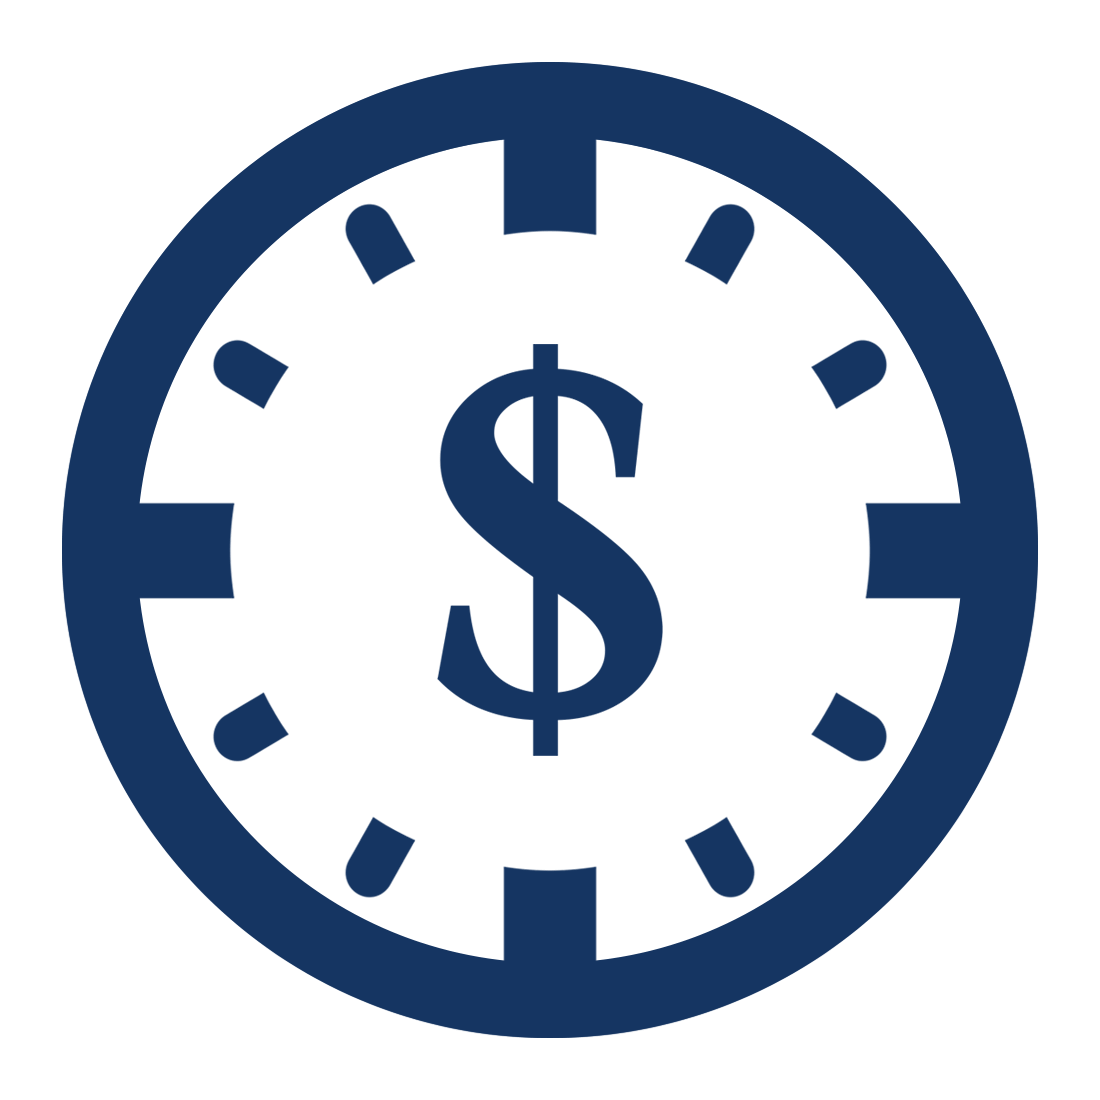 Time and money clipart clip art free download Is wireless right for you? | Lorex clip art free download